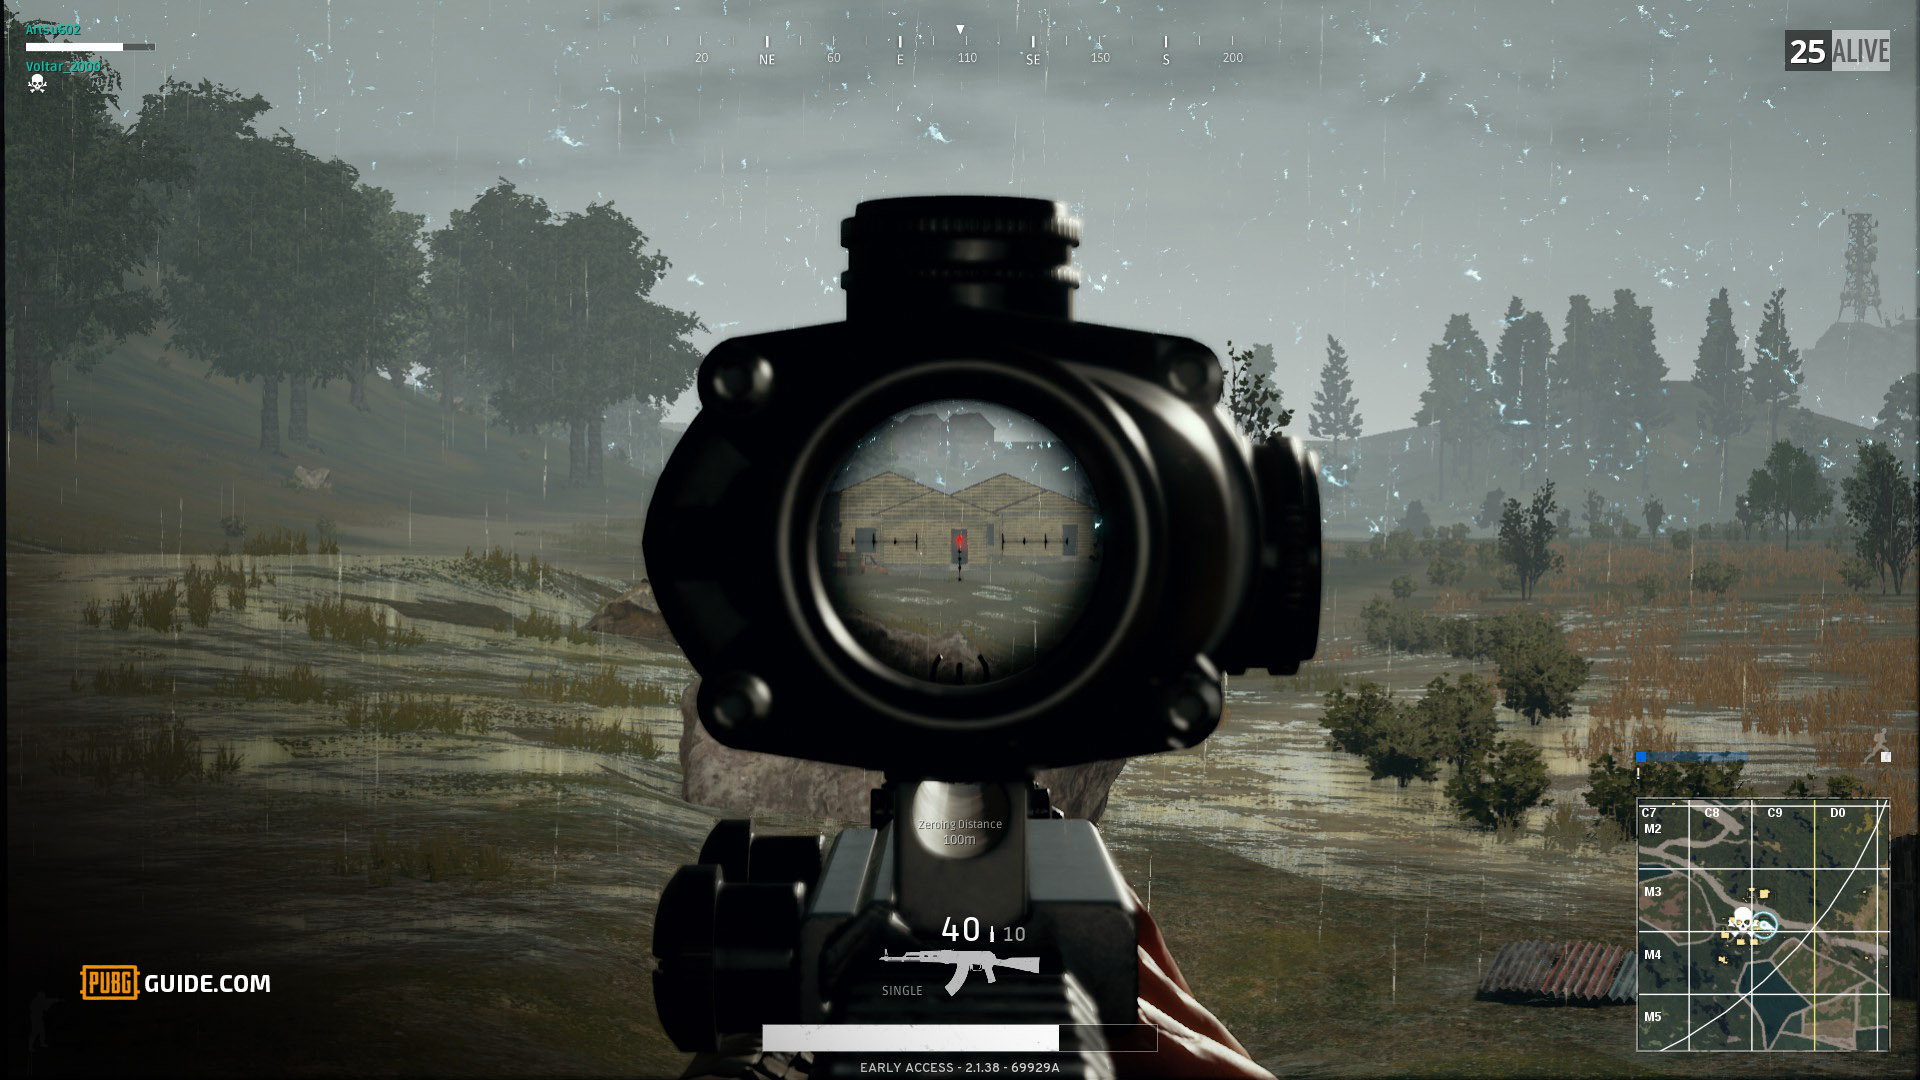 pubg_4x_ACOG_Scope_aim